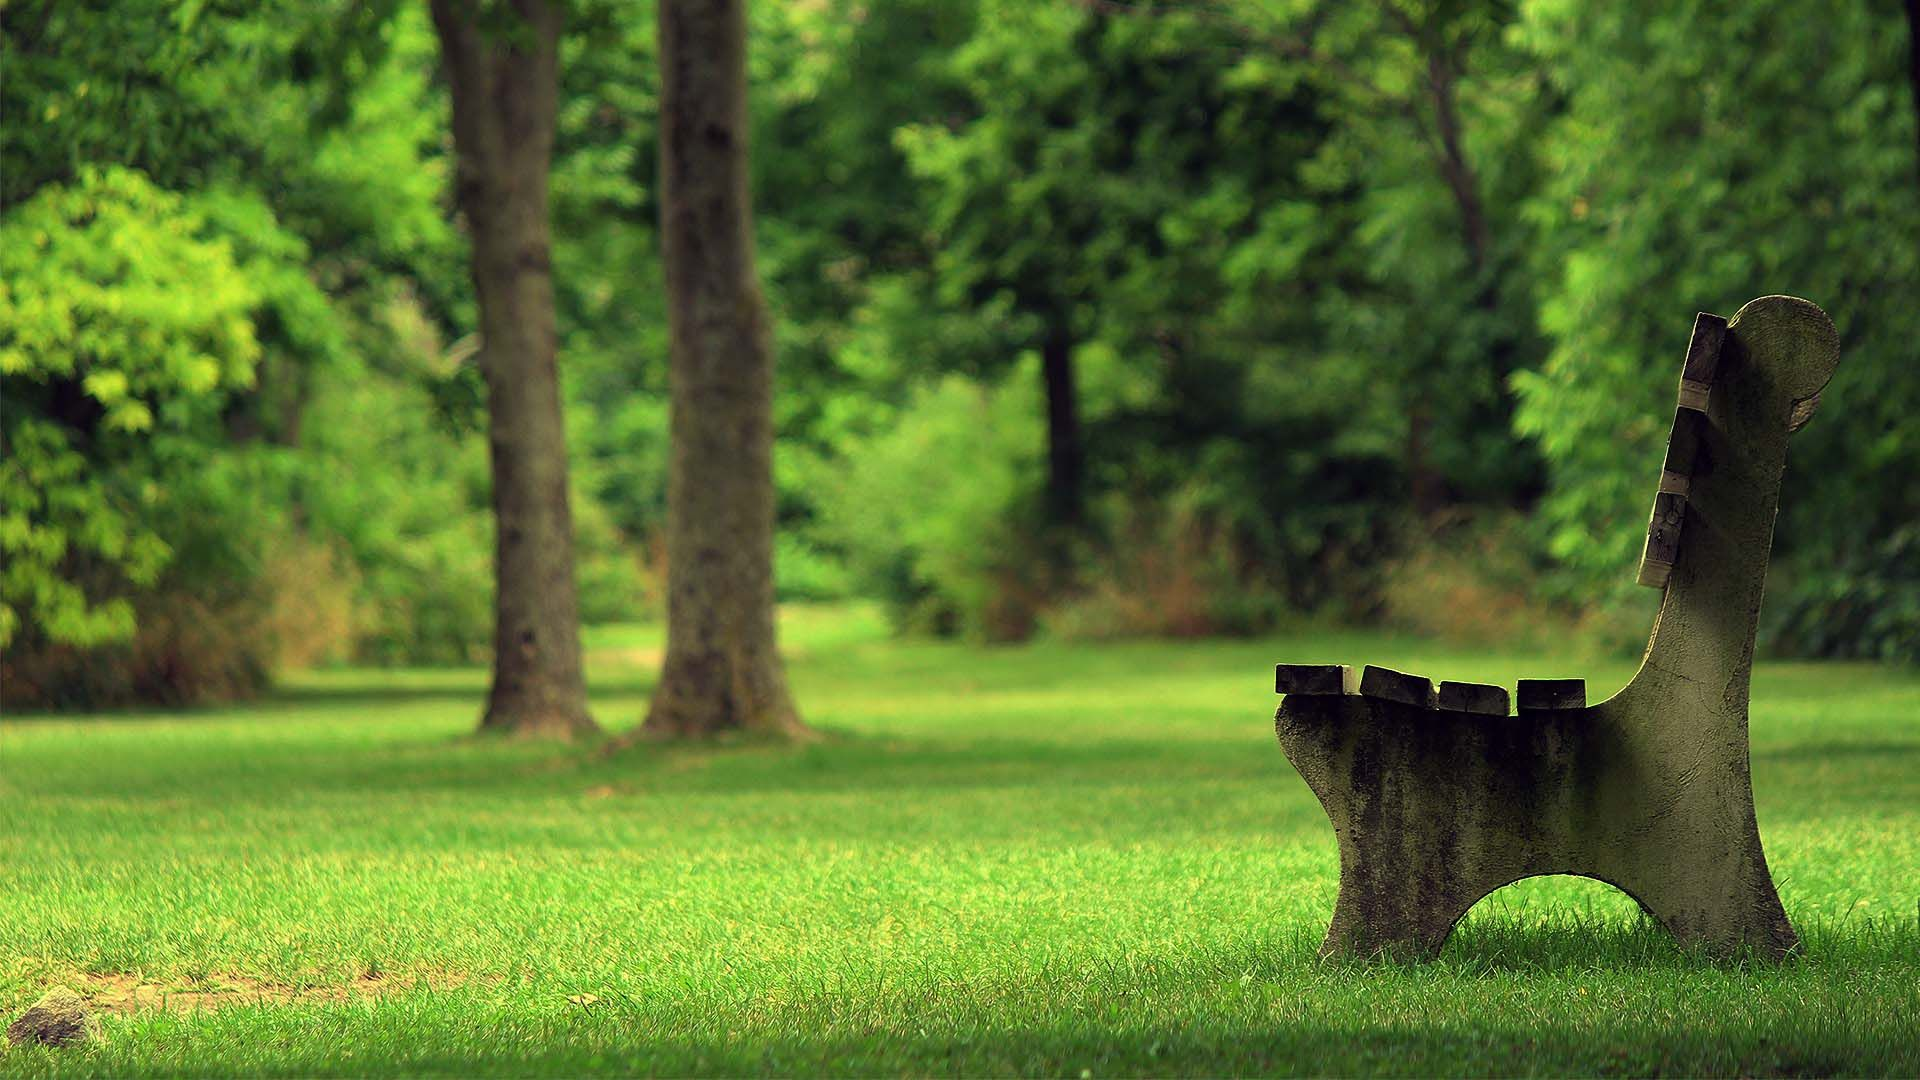 Photography Bench Green Park Wallpaper 1920x1080 Cool Pc Wallpapers Outdoor Summer Relaxation Relaxing Images